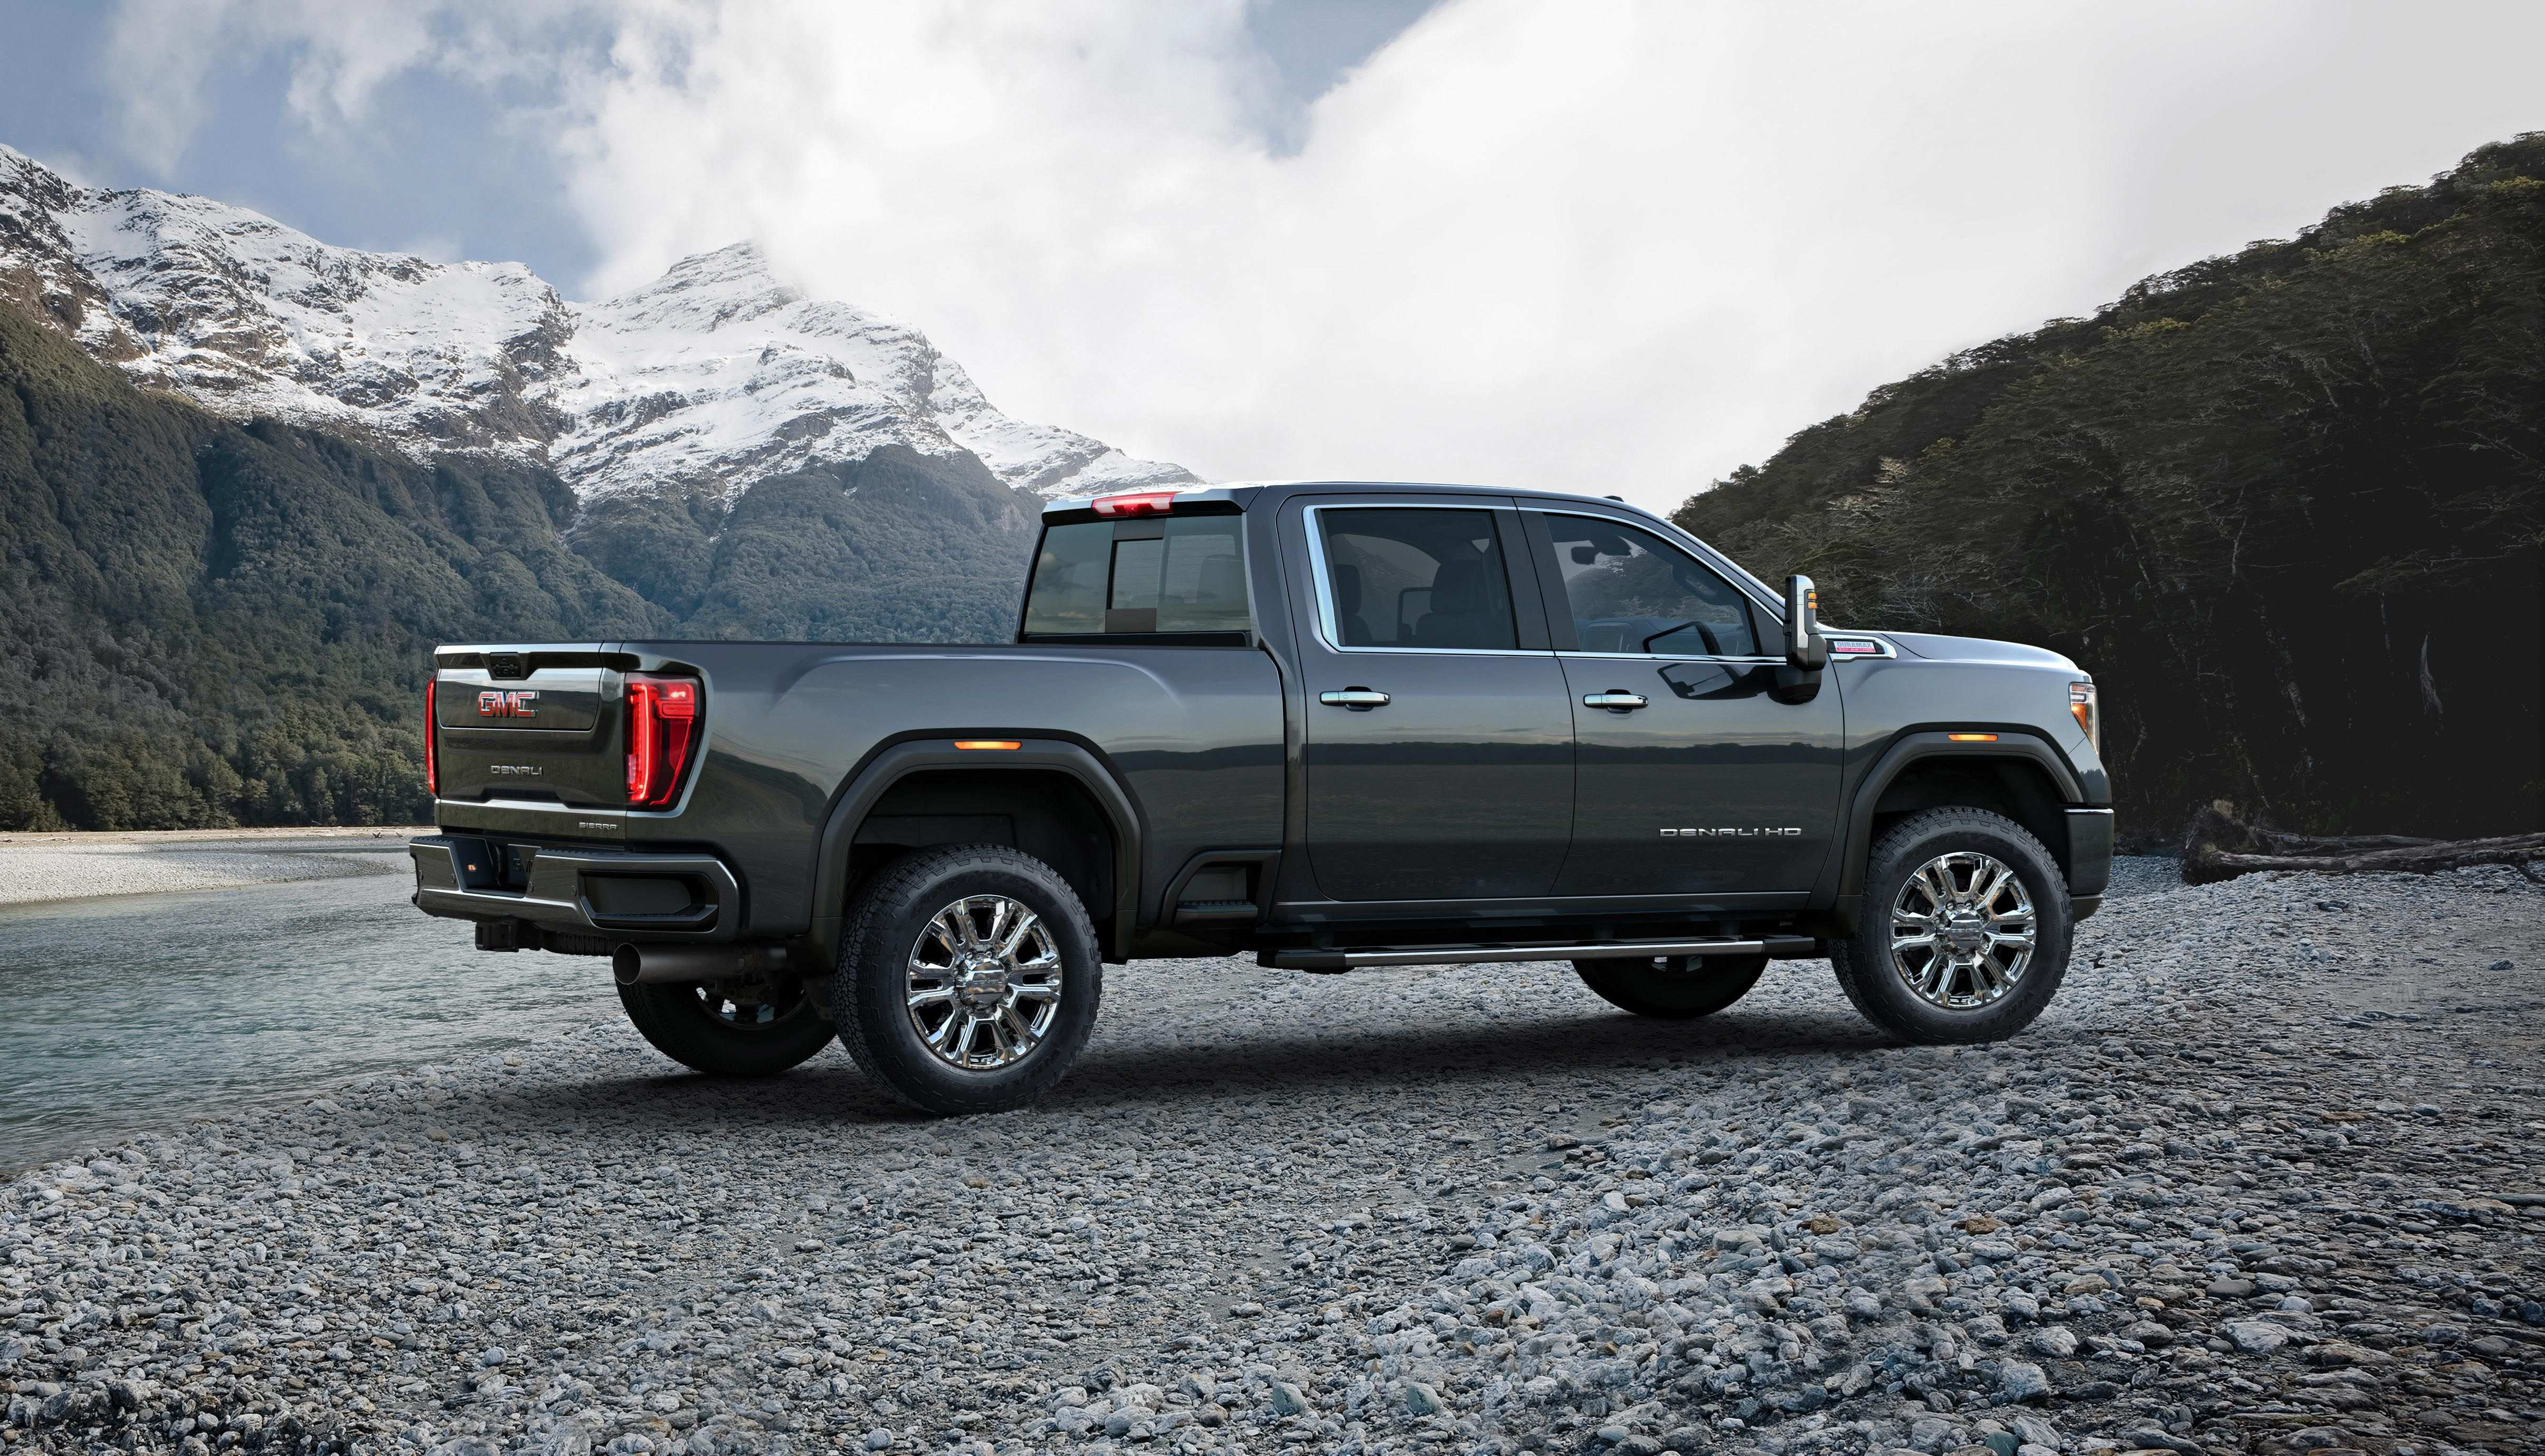 79 All New 2020 Gmc Sierra Denali 1500 Hd Rumors by 2020 Gmc Sierra Denali 1500 Hd